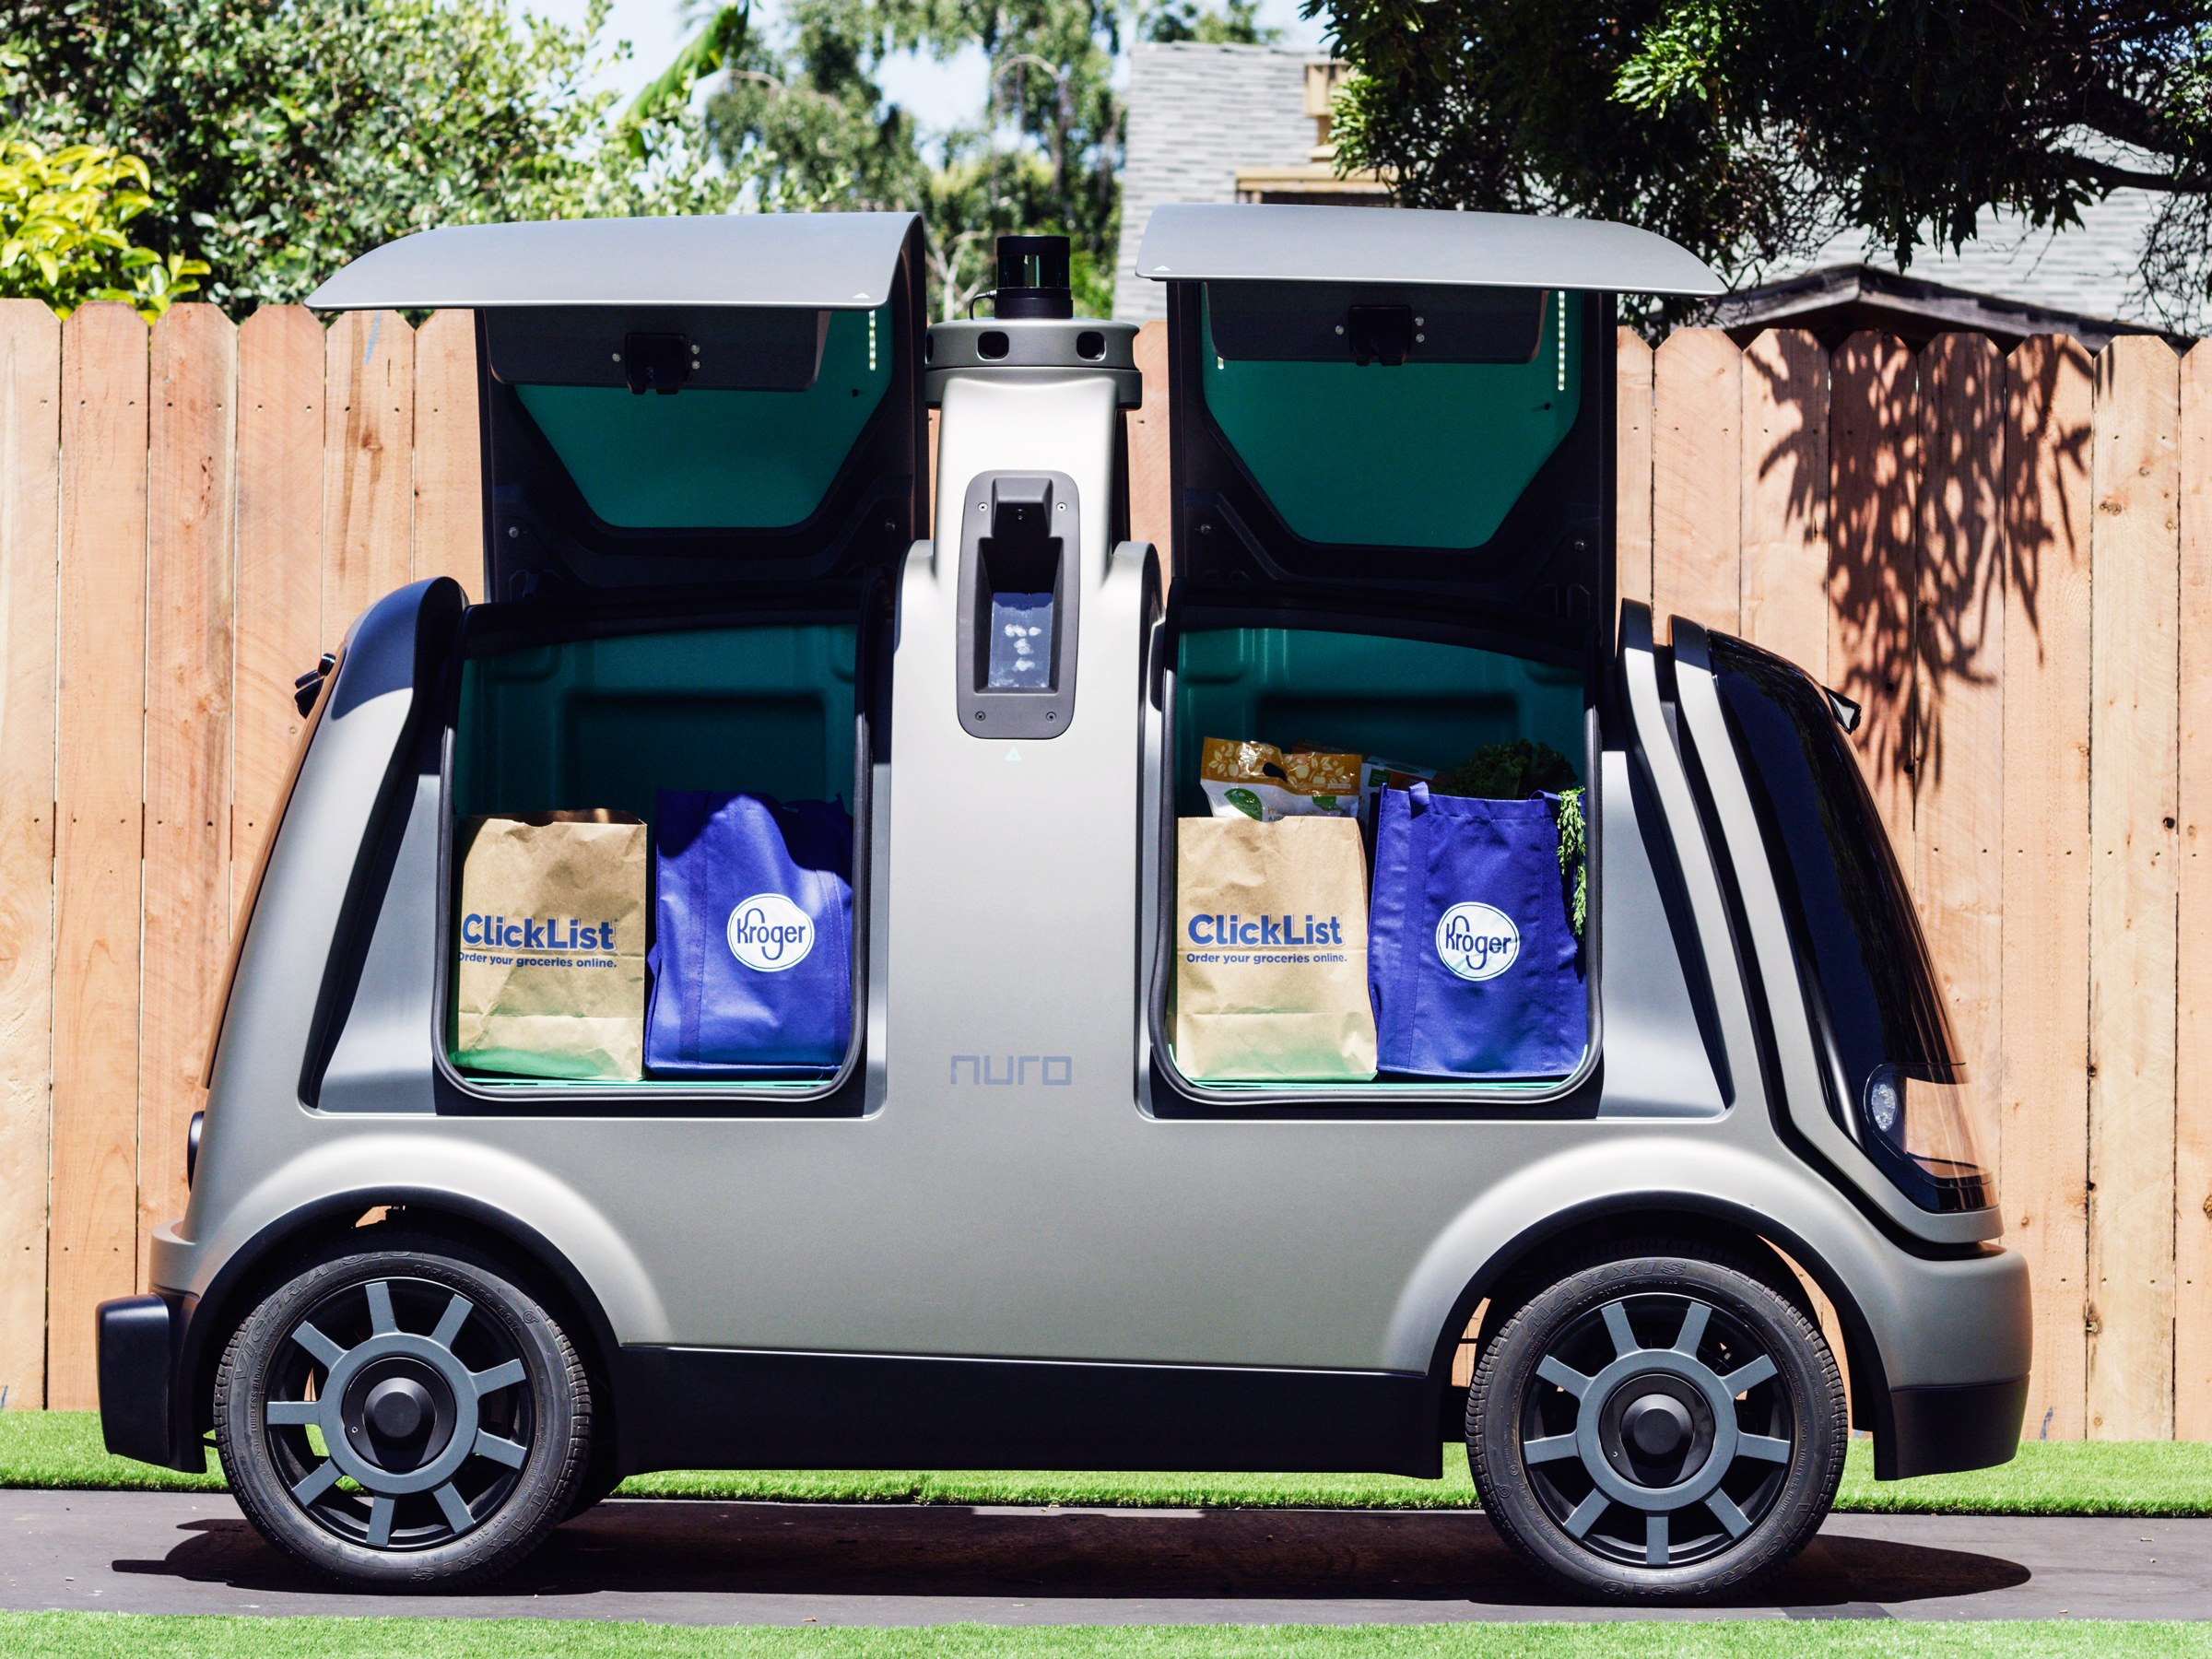 Kroger Collaborates With Autonomous Vehicle Startup Nuro for Robot on golf cartoons, golf girls, golf trolley, golf players, golf card, golf hitting nets, golf words, golf buggy, golf accessories, golf tools, golf games, golf machine, golf handicap,